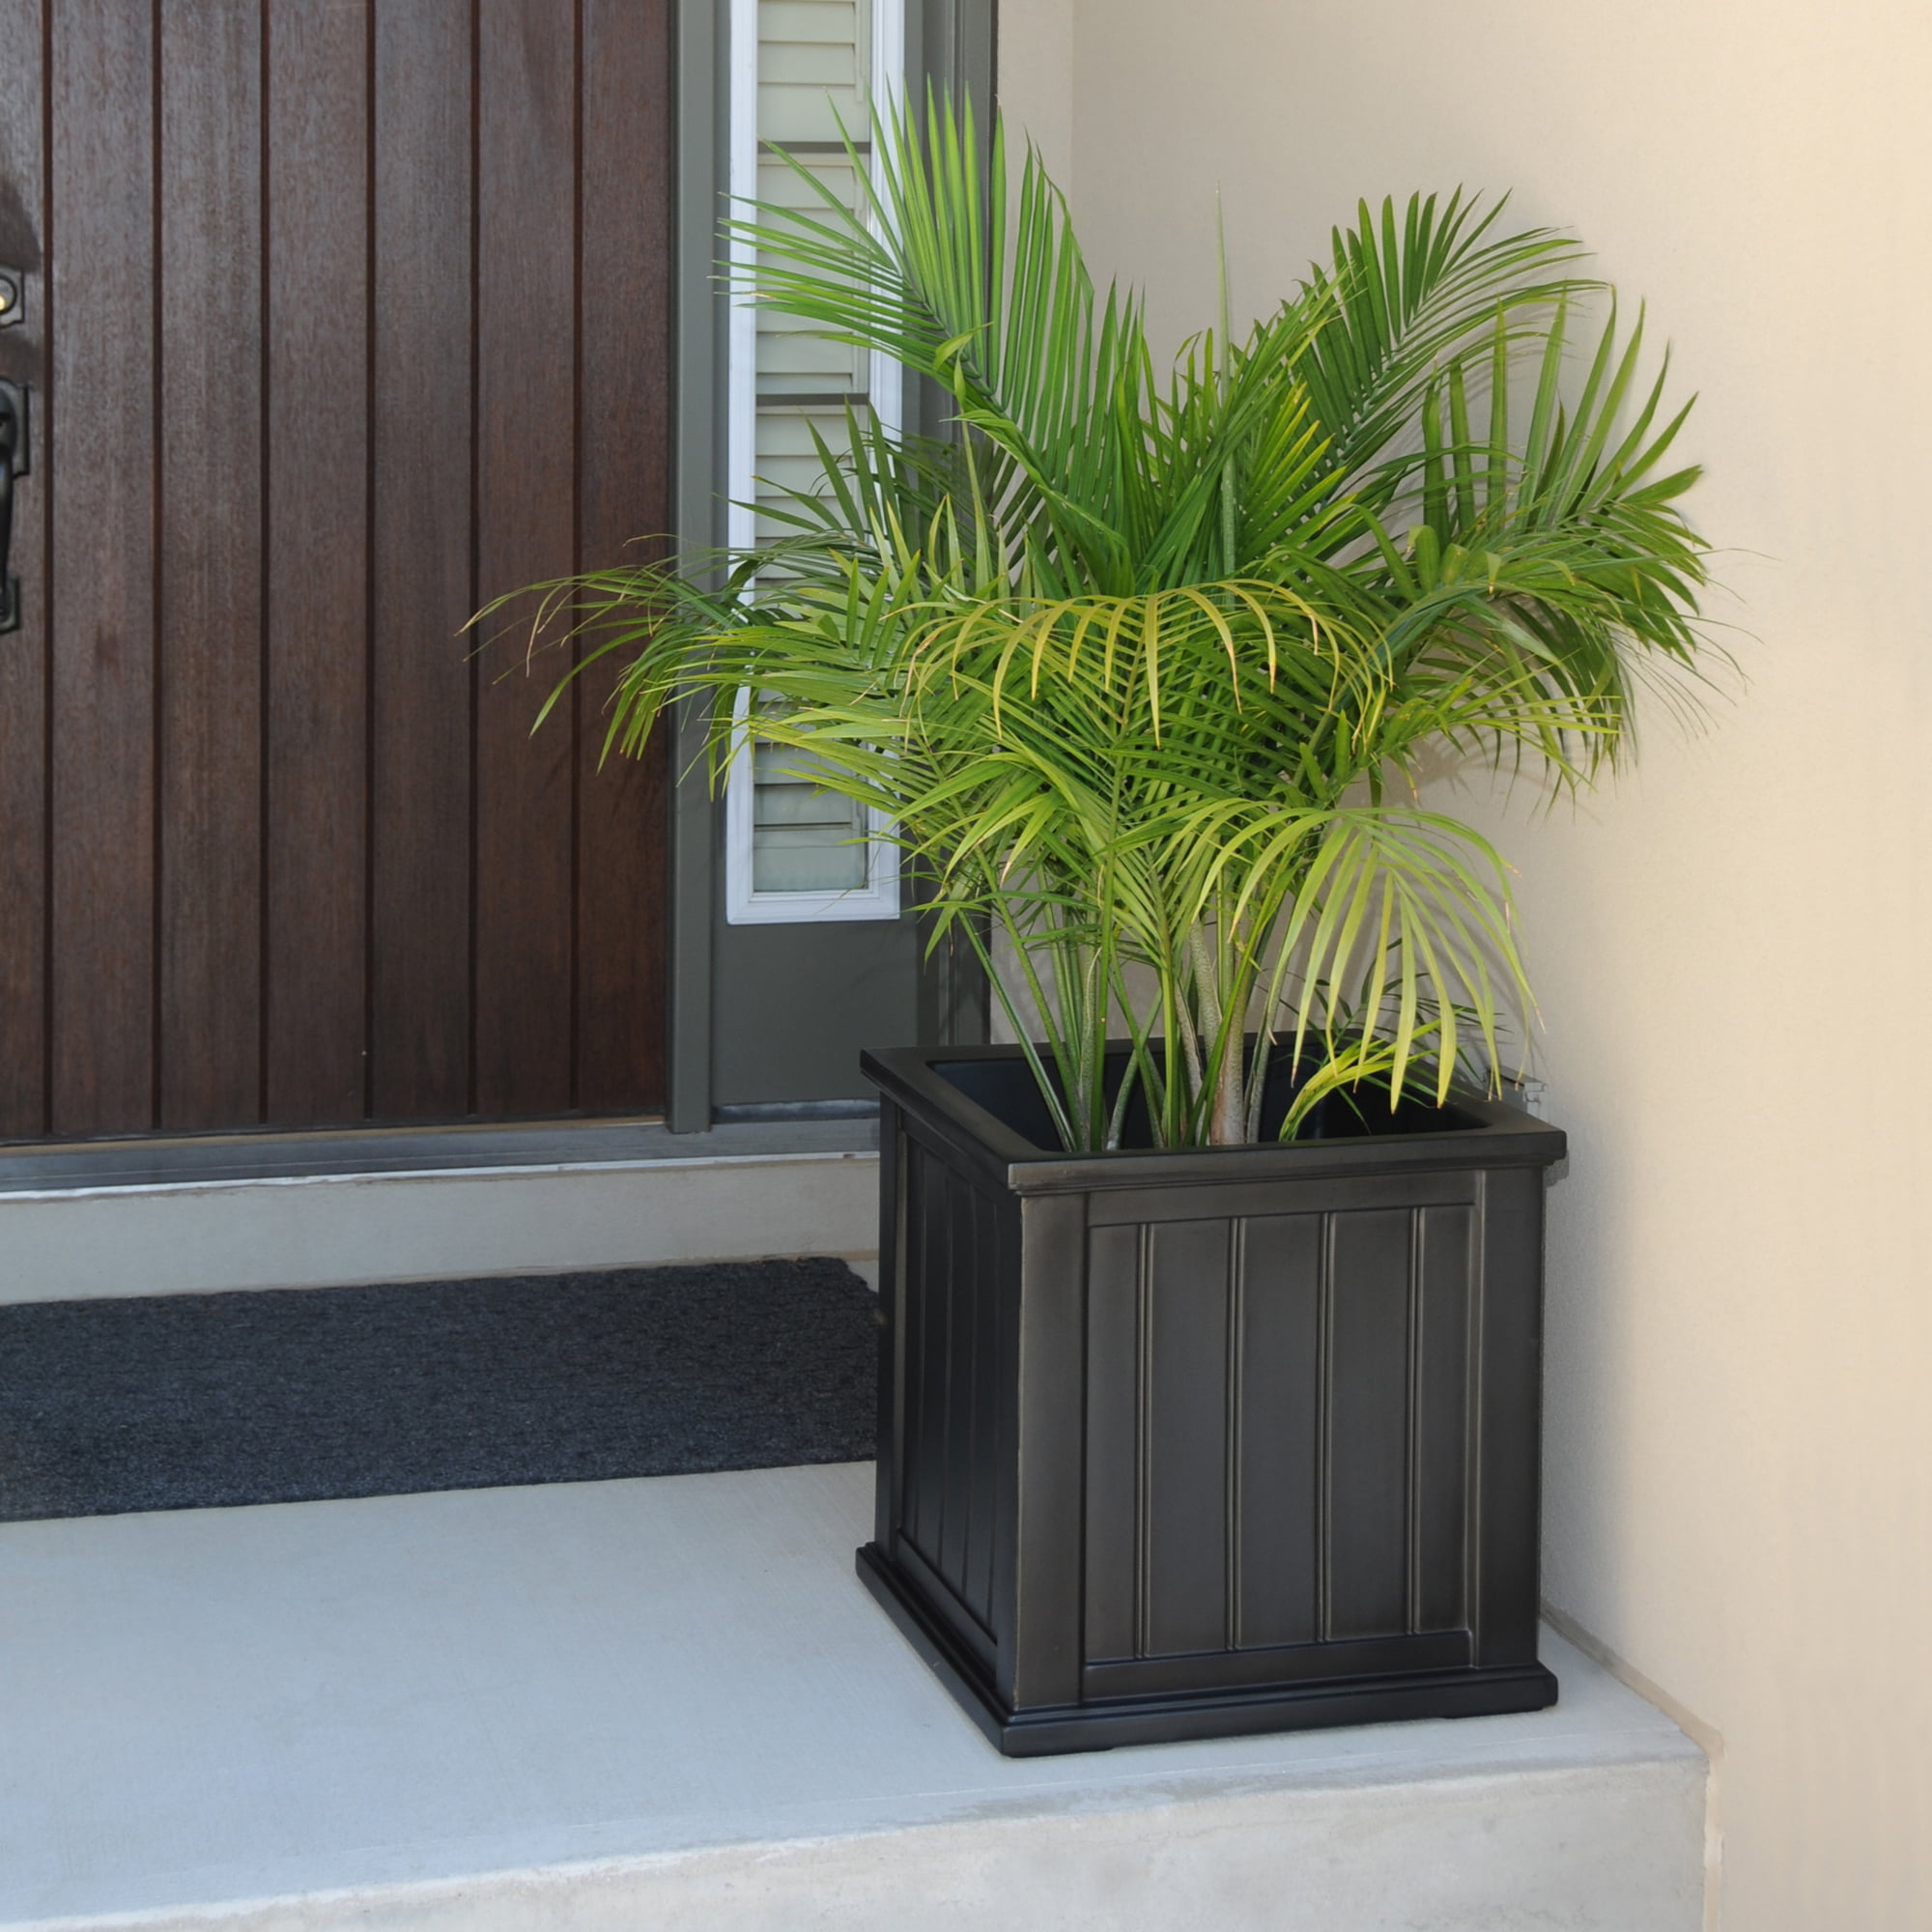 Cape Cod Patio Planter 20x20 Black by Mayne Inc.